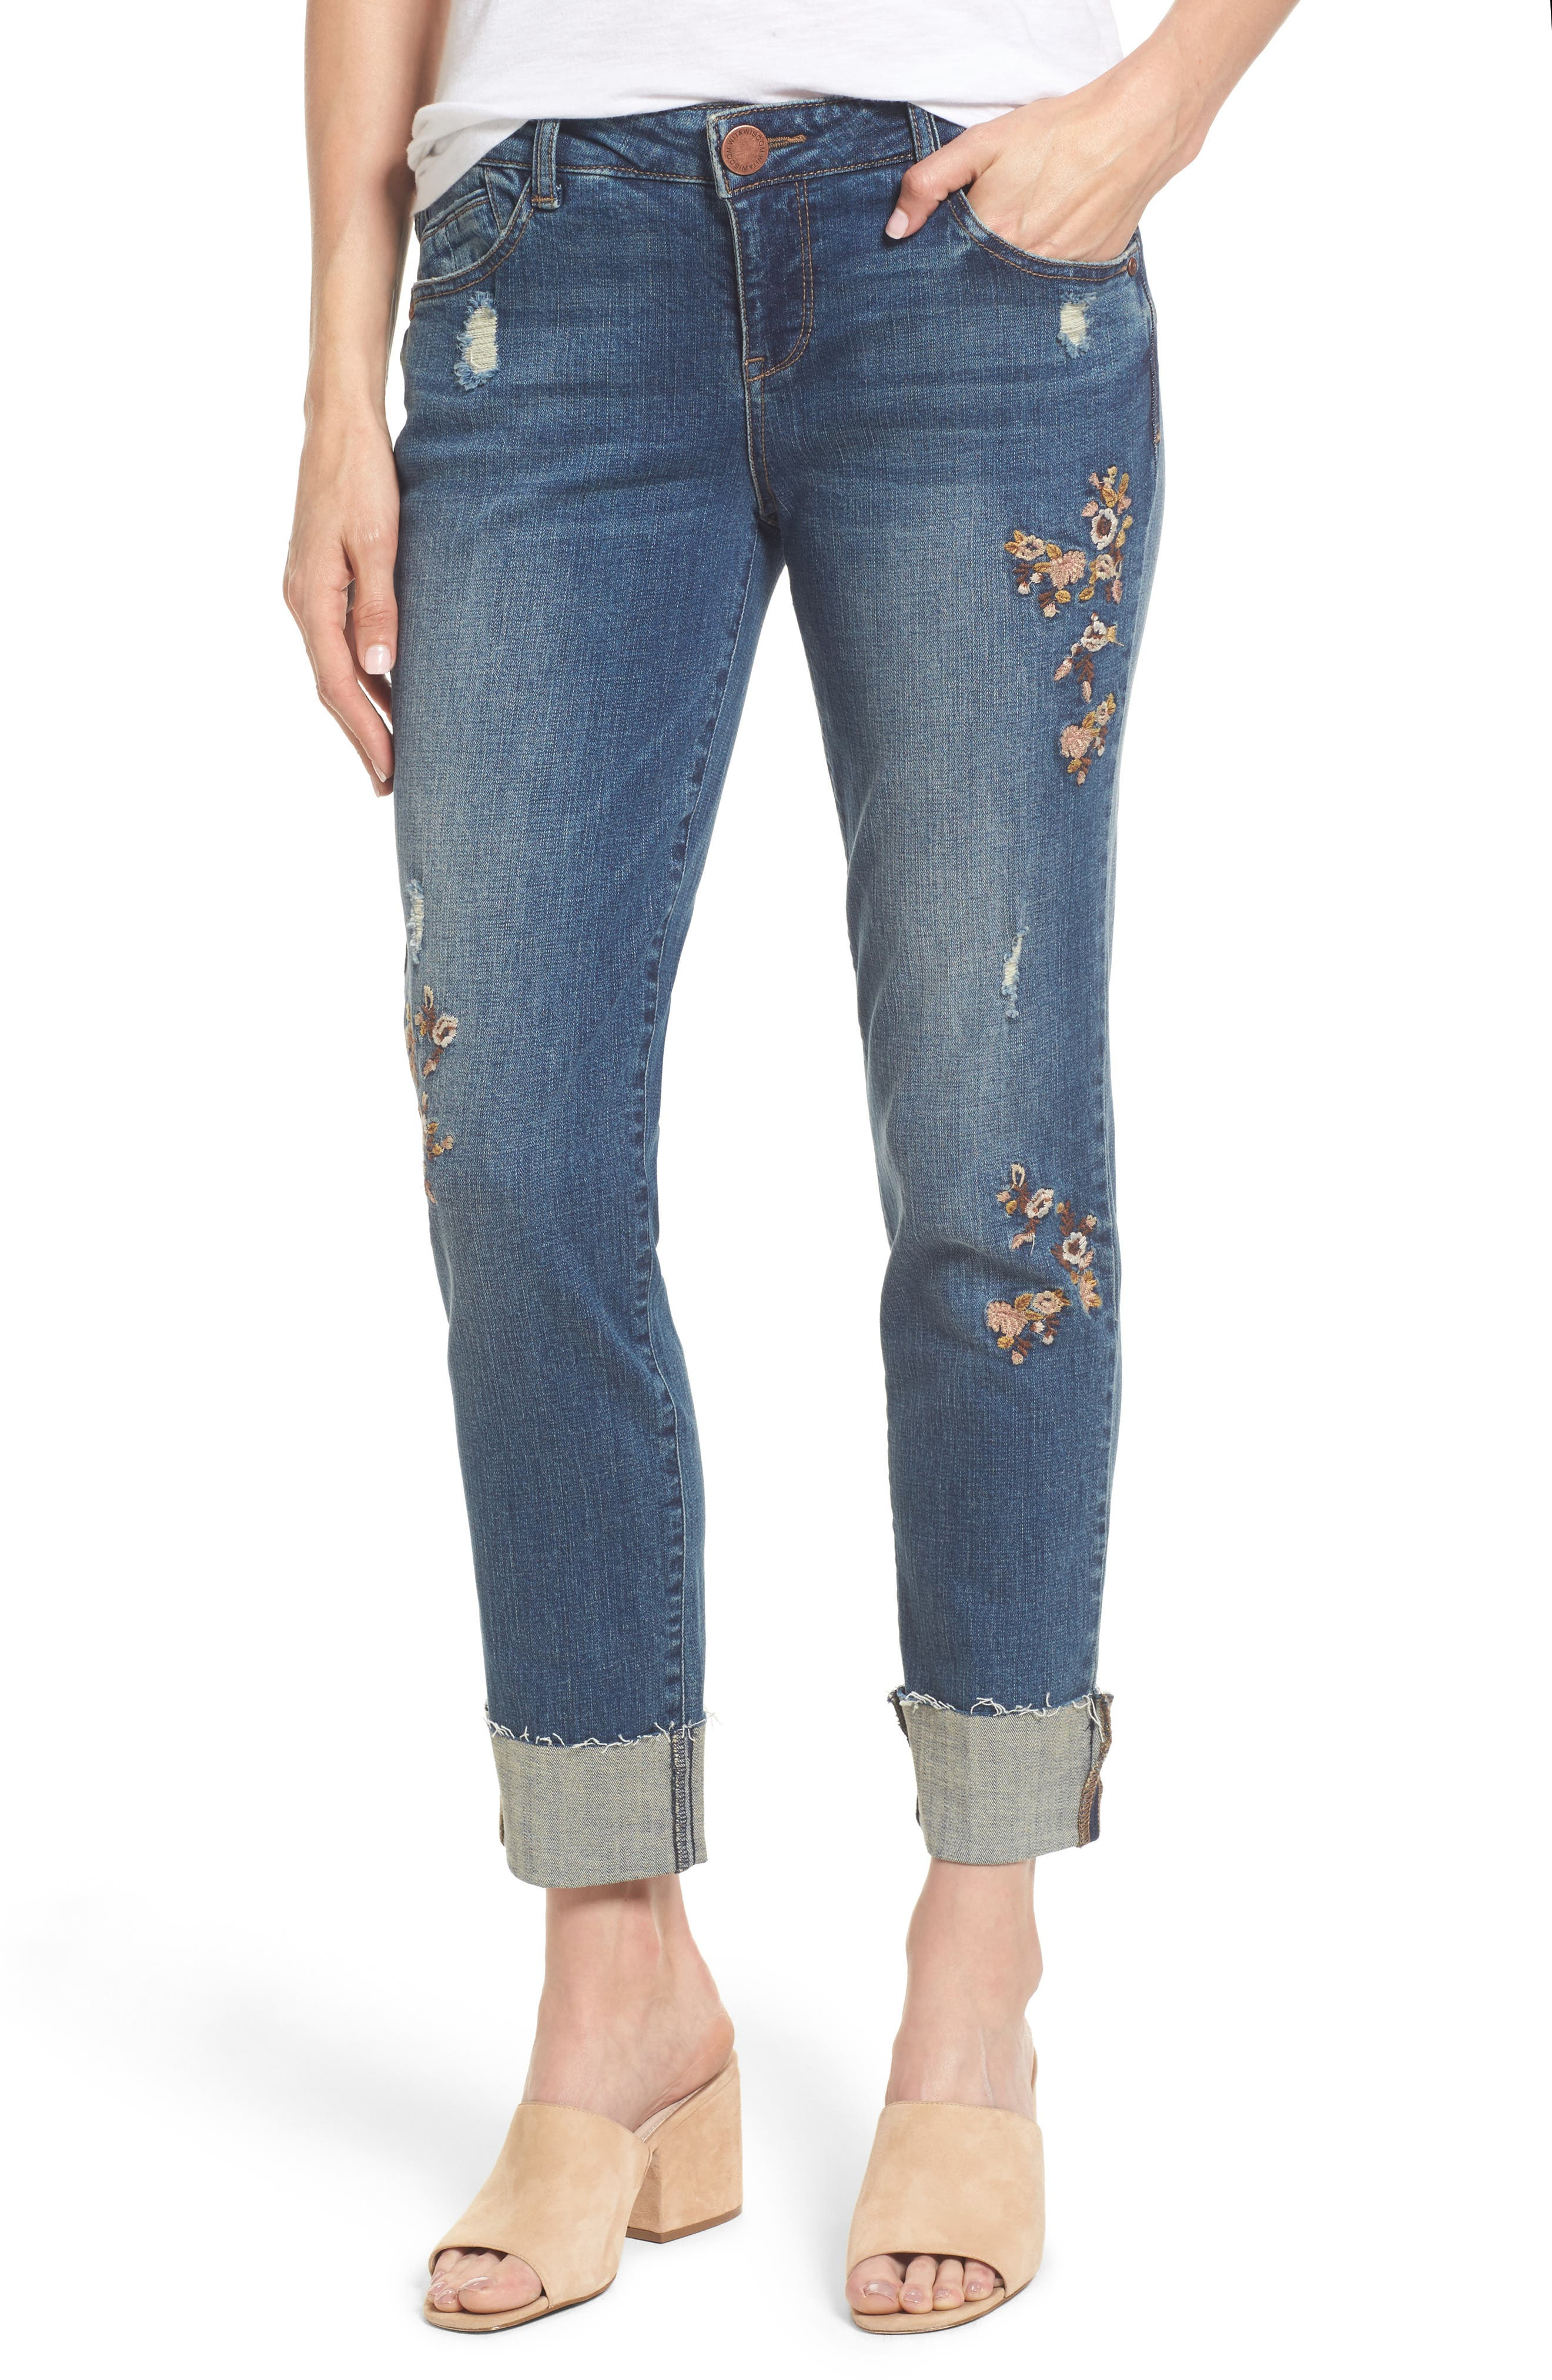 Wit & Wisdom Flex-ellent Embroidered Boyfriend Jeans (Nordstrom Exclusive) (Regular & Petite)